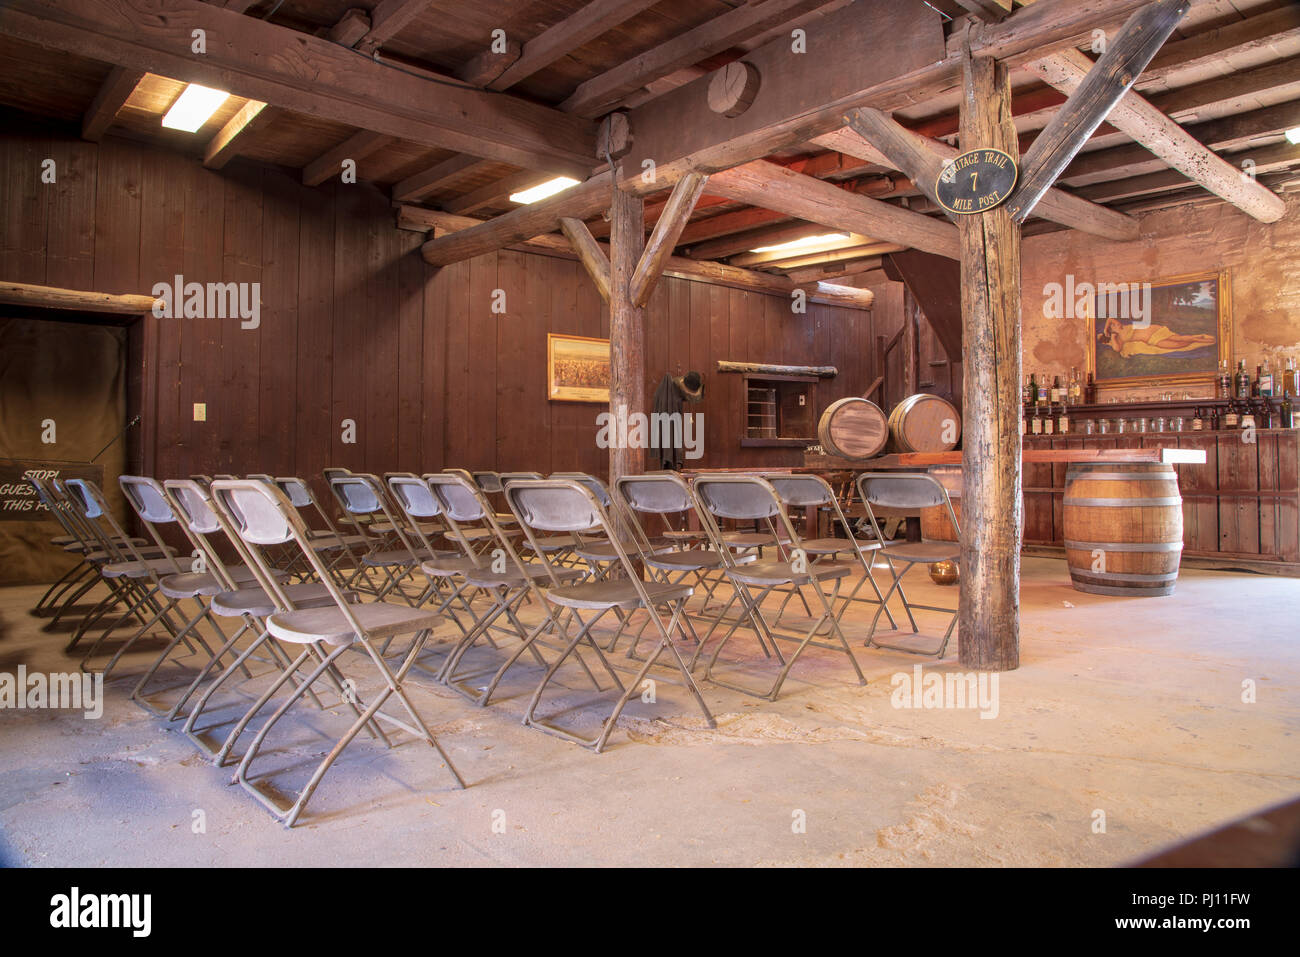 Interior of western movie studio building. - Stock Image